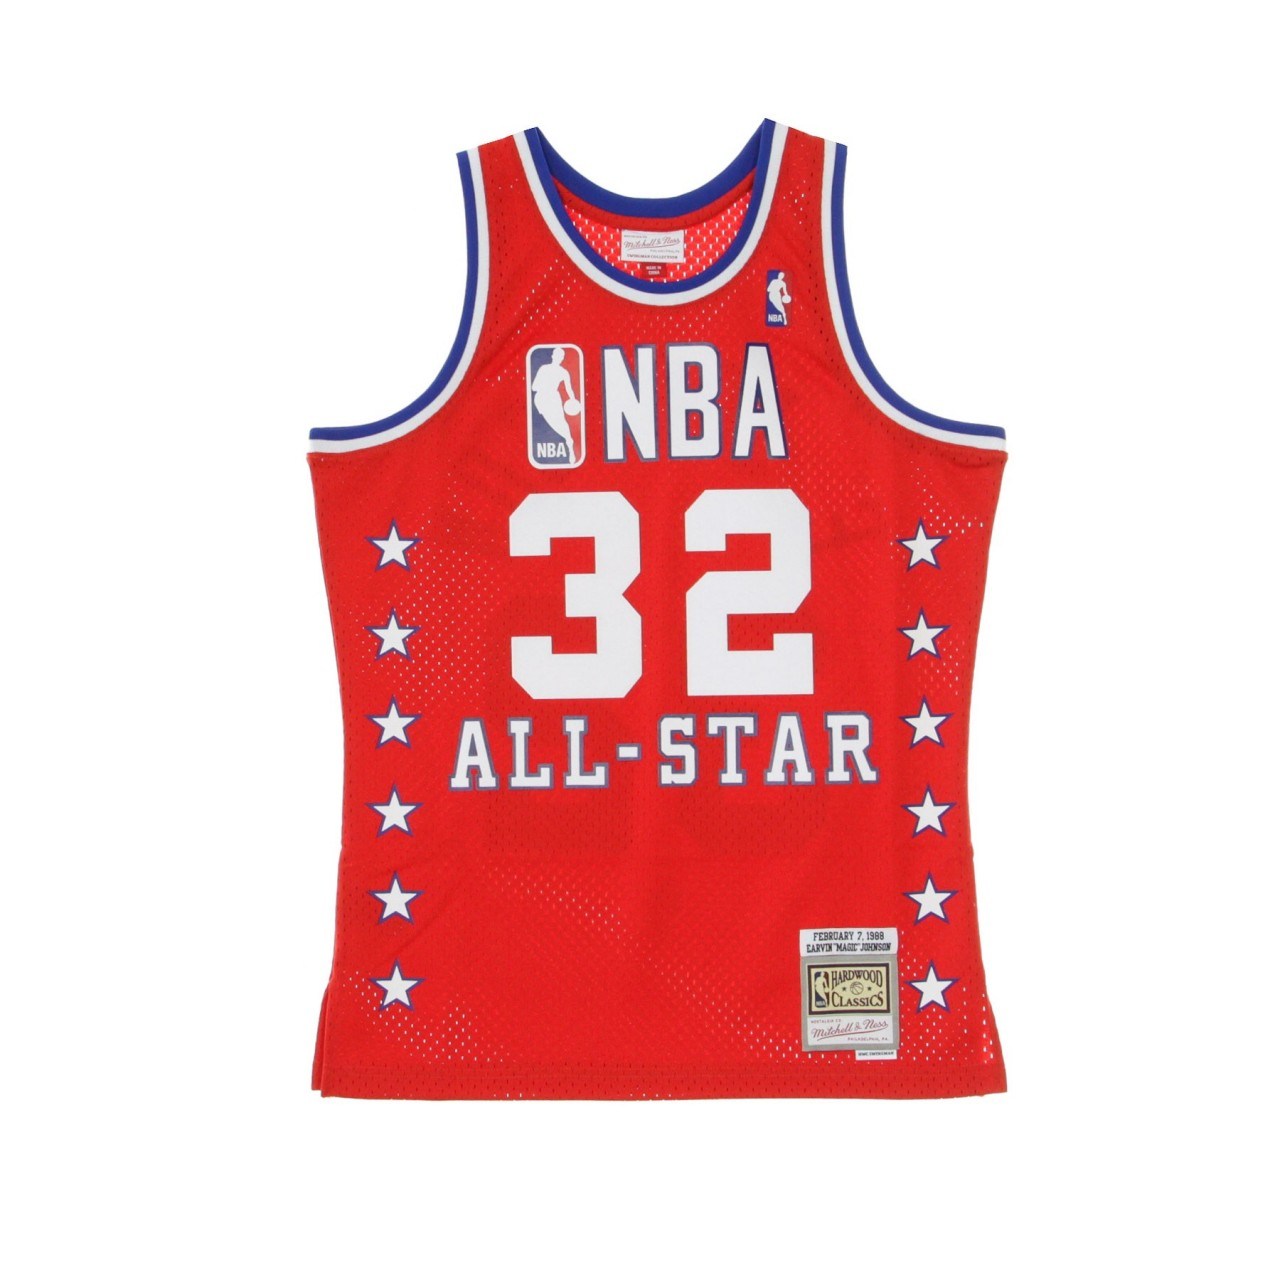 """MITCHELL & NESS NBA SWINGMAN JERSEY HARDWOOD CLASSICS NO 32 EARVIN """"MAGIC"""" JOHNSON ALL STAR GAME WEST 1988 SMJYCP19048-ASWRED188EJH"""